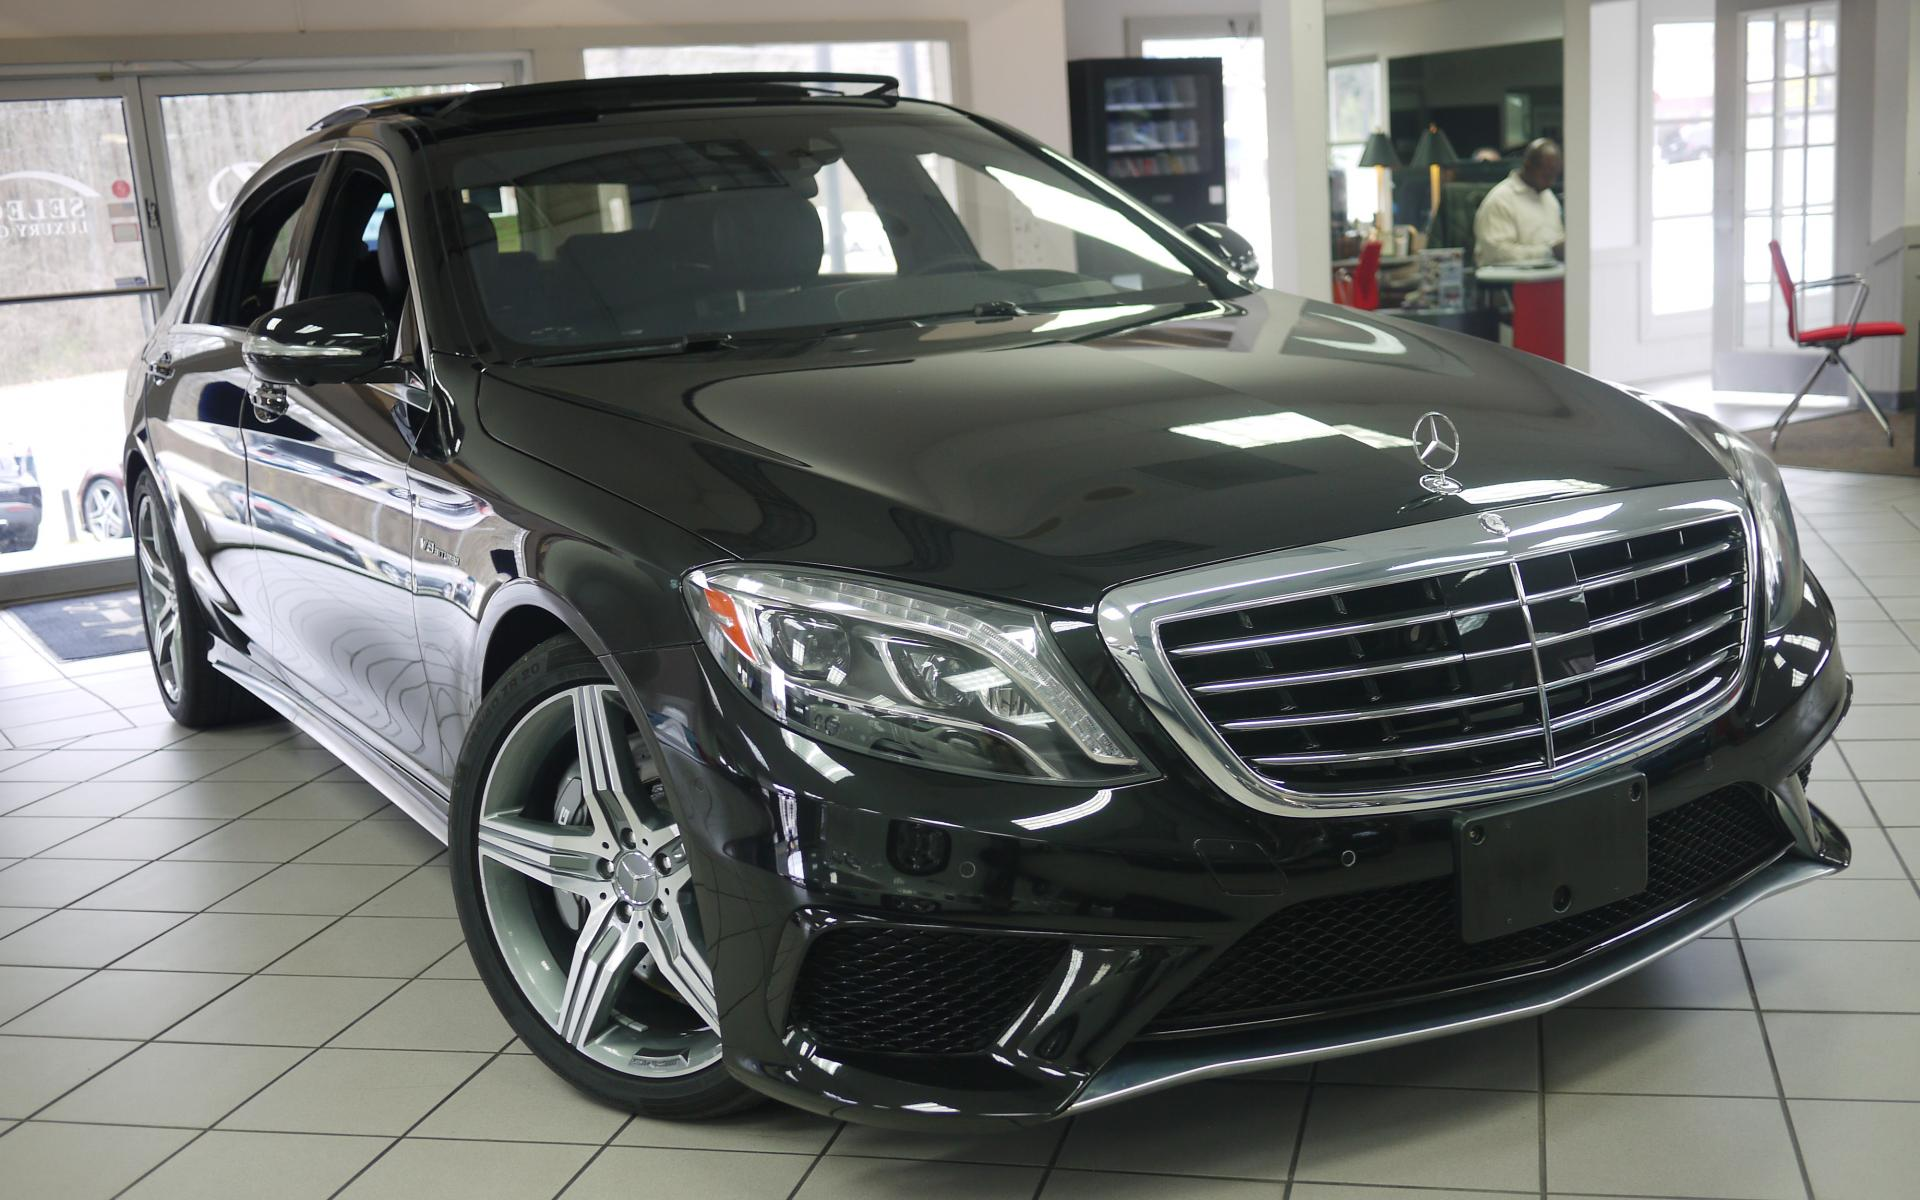 Used 2015 mercedes benz s class s63 amg marietta ga for 2015 mercedes benz s63